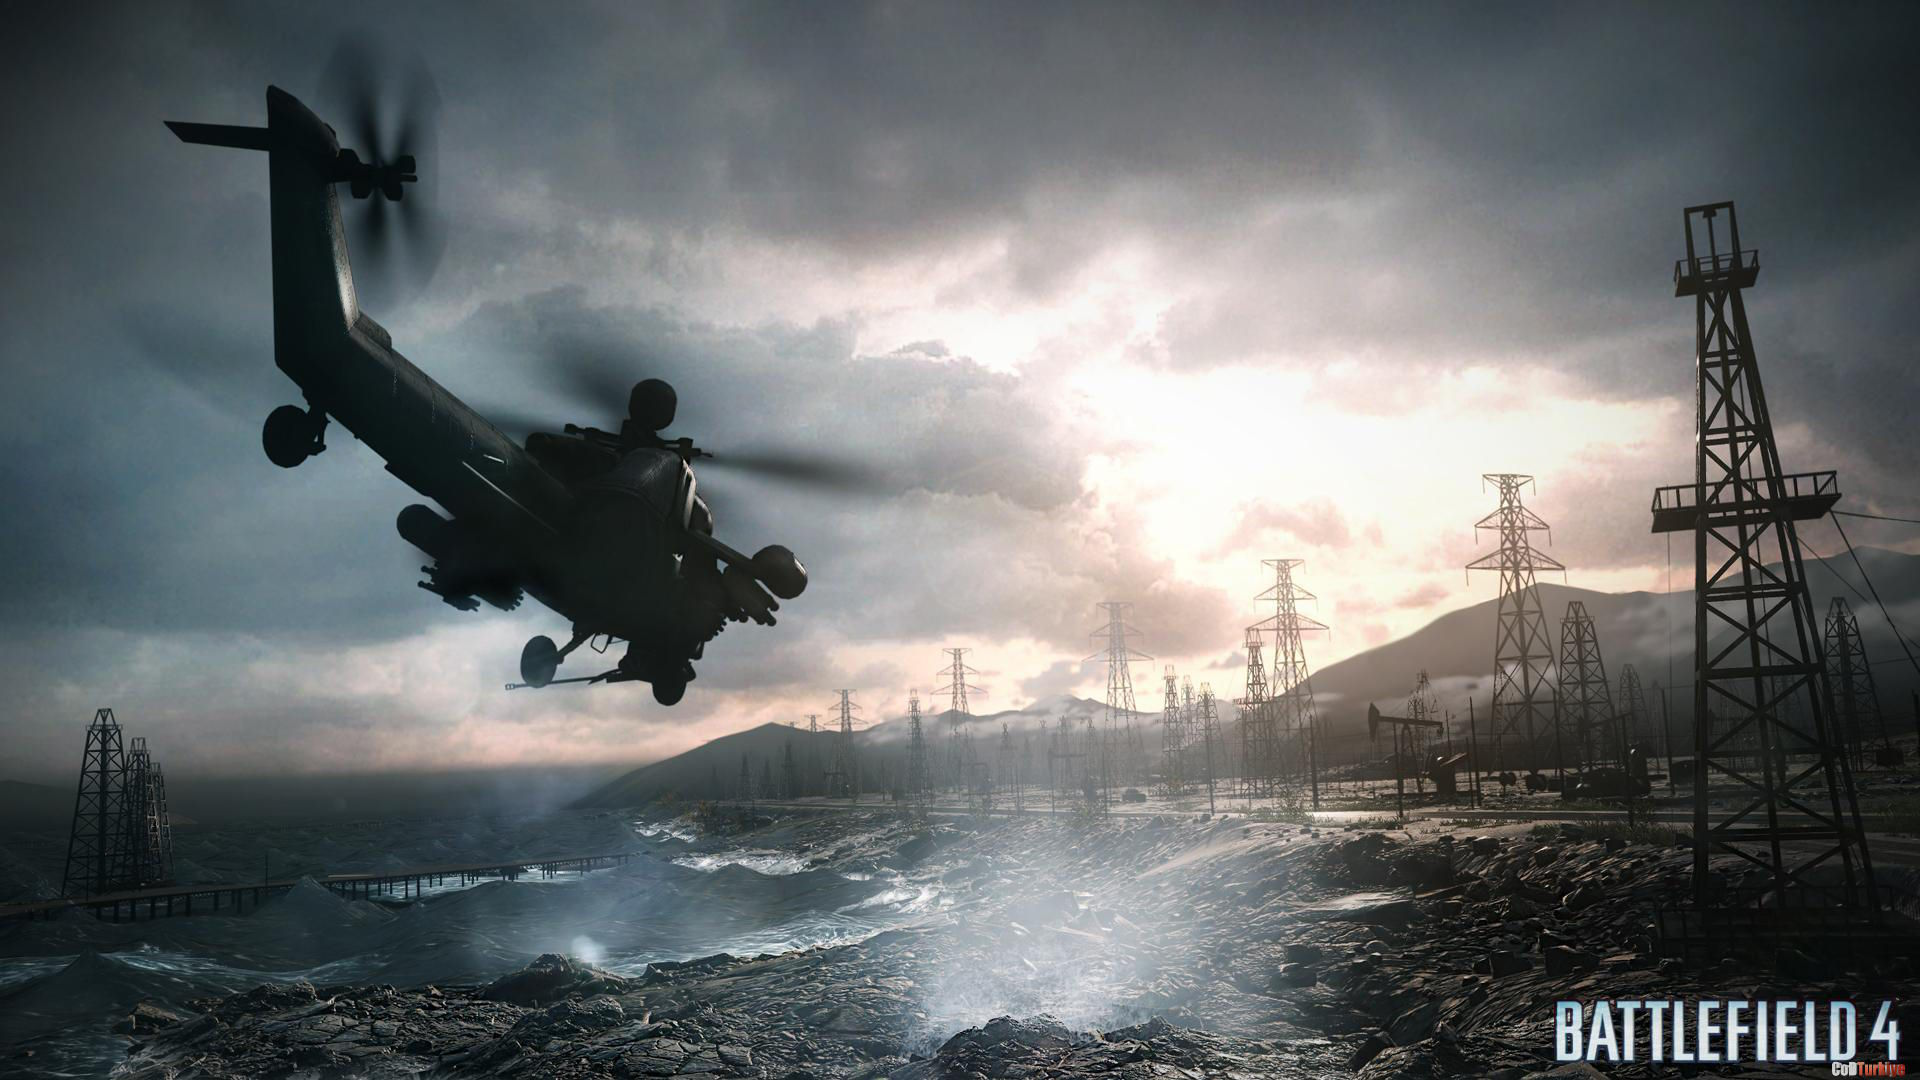 Battlefield 4 Wallpapers Chopper Sea